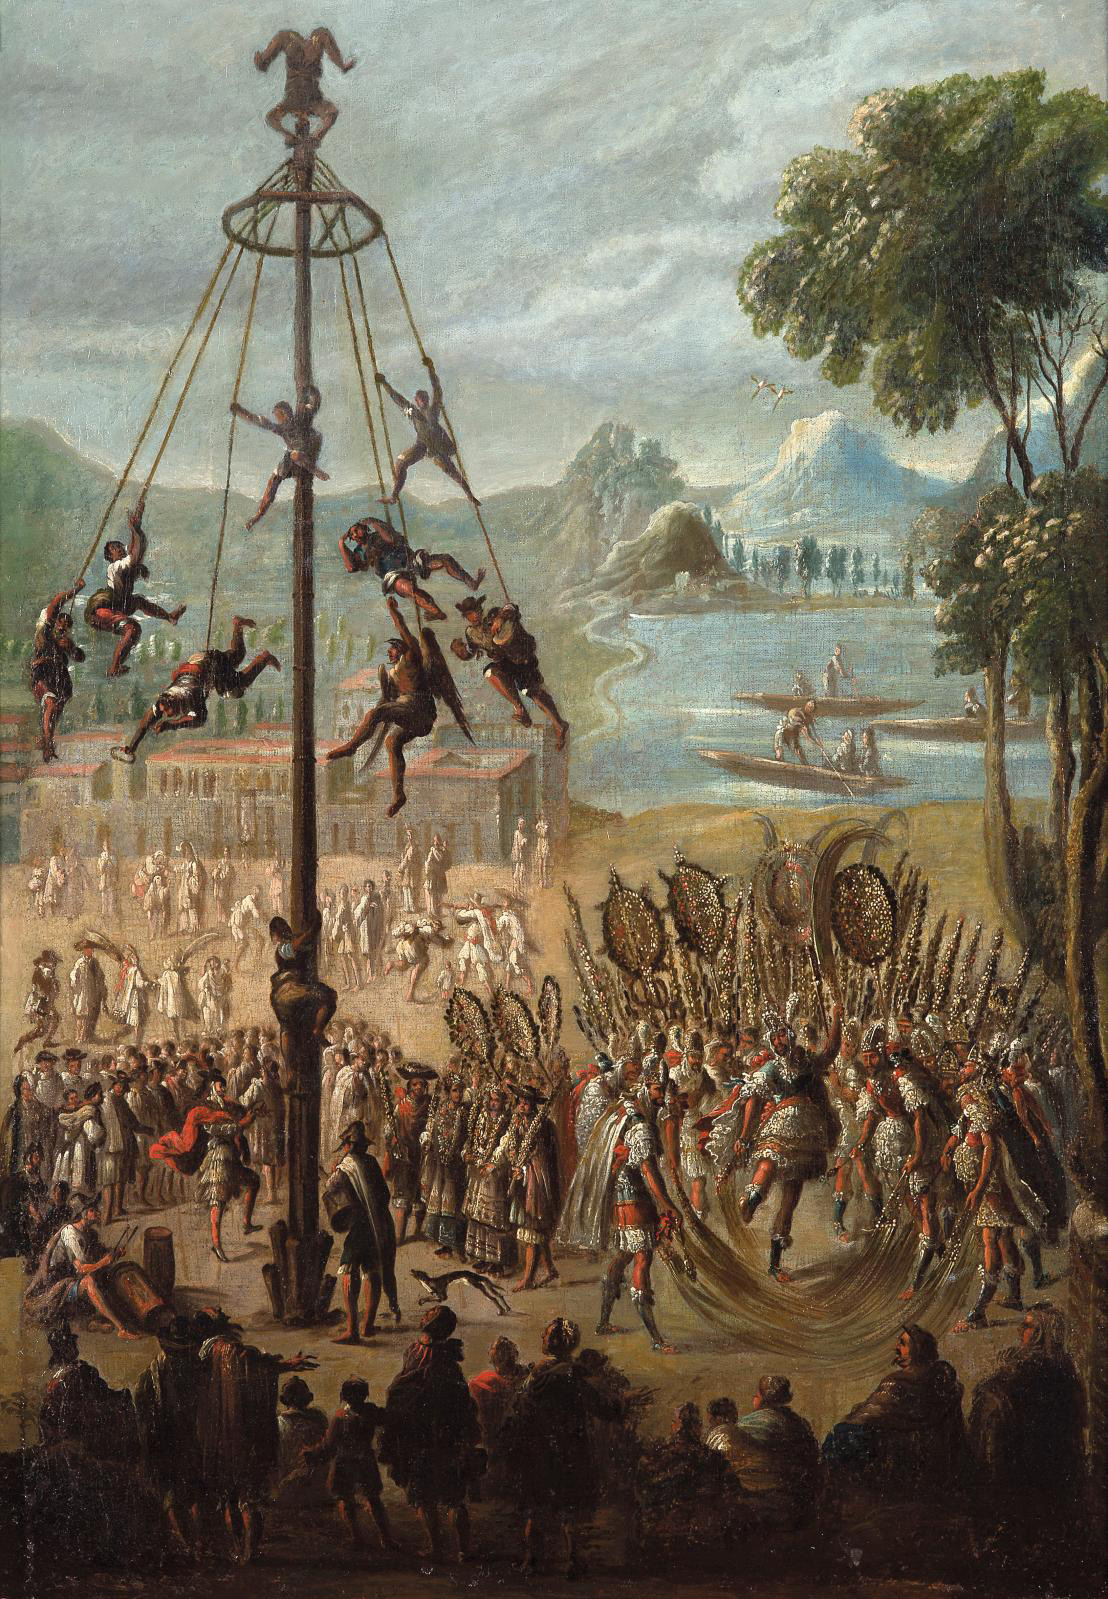 Colonial school, 16th century, The Volador Dance, oil on canvas, 72.5 x 52.5 cm (28.54 x 20.66 in).Result: €284,320